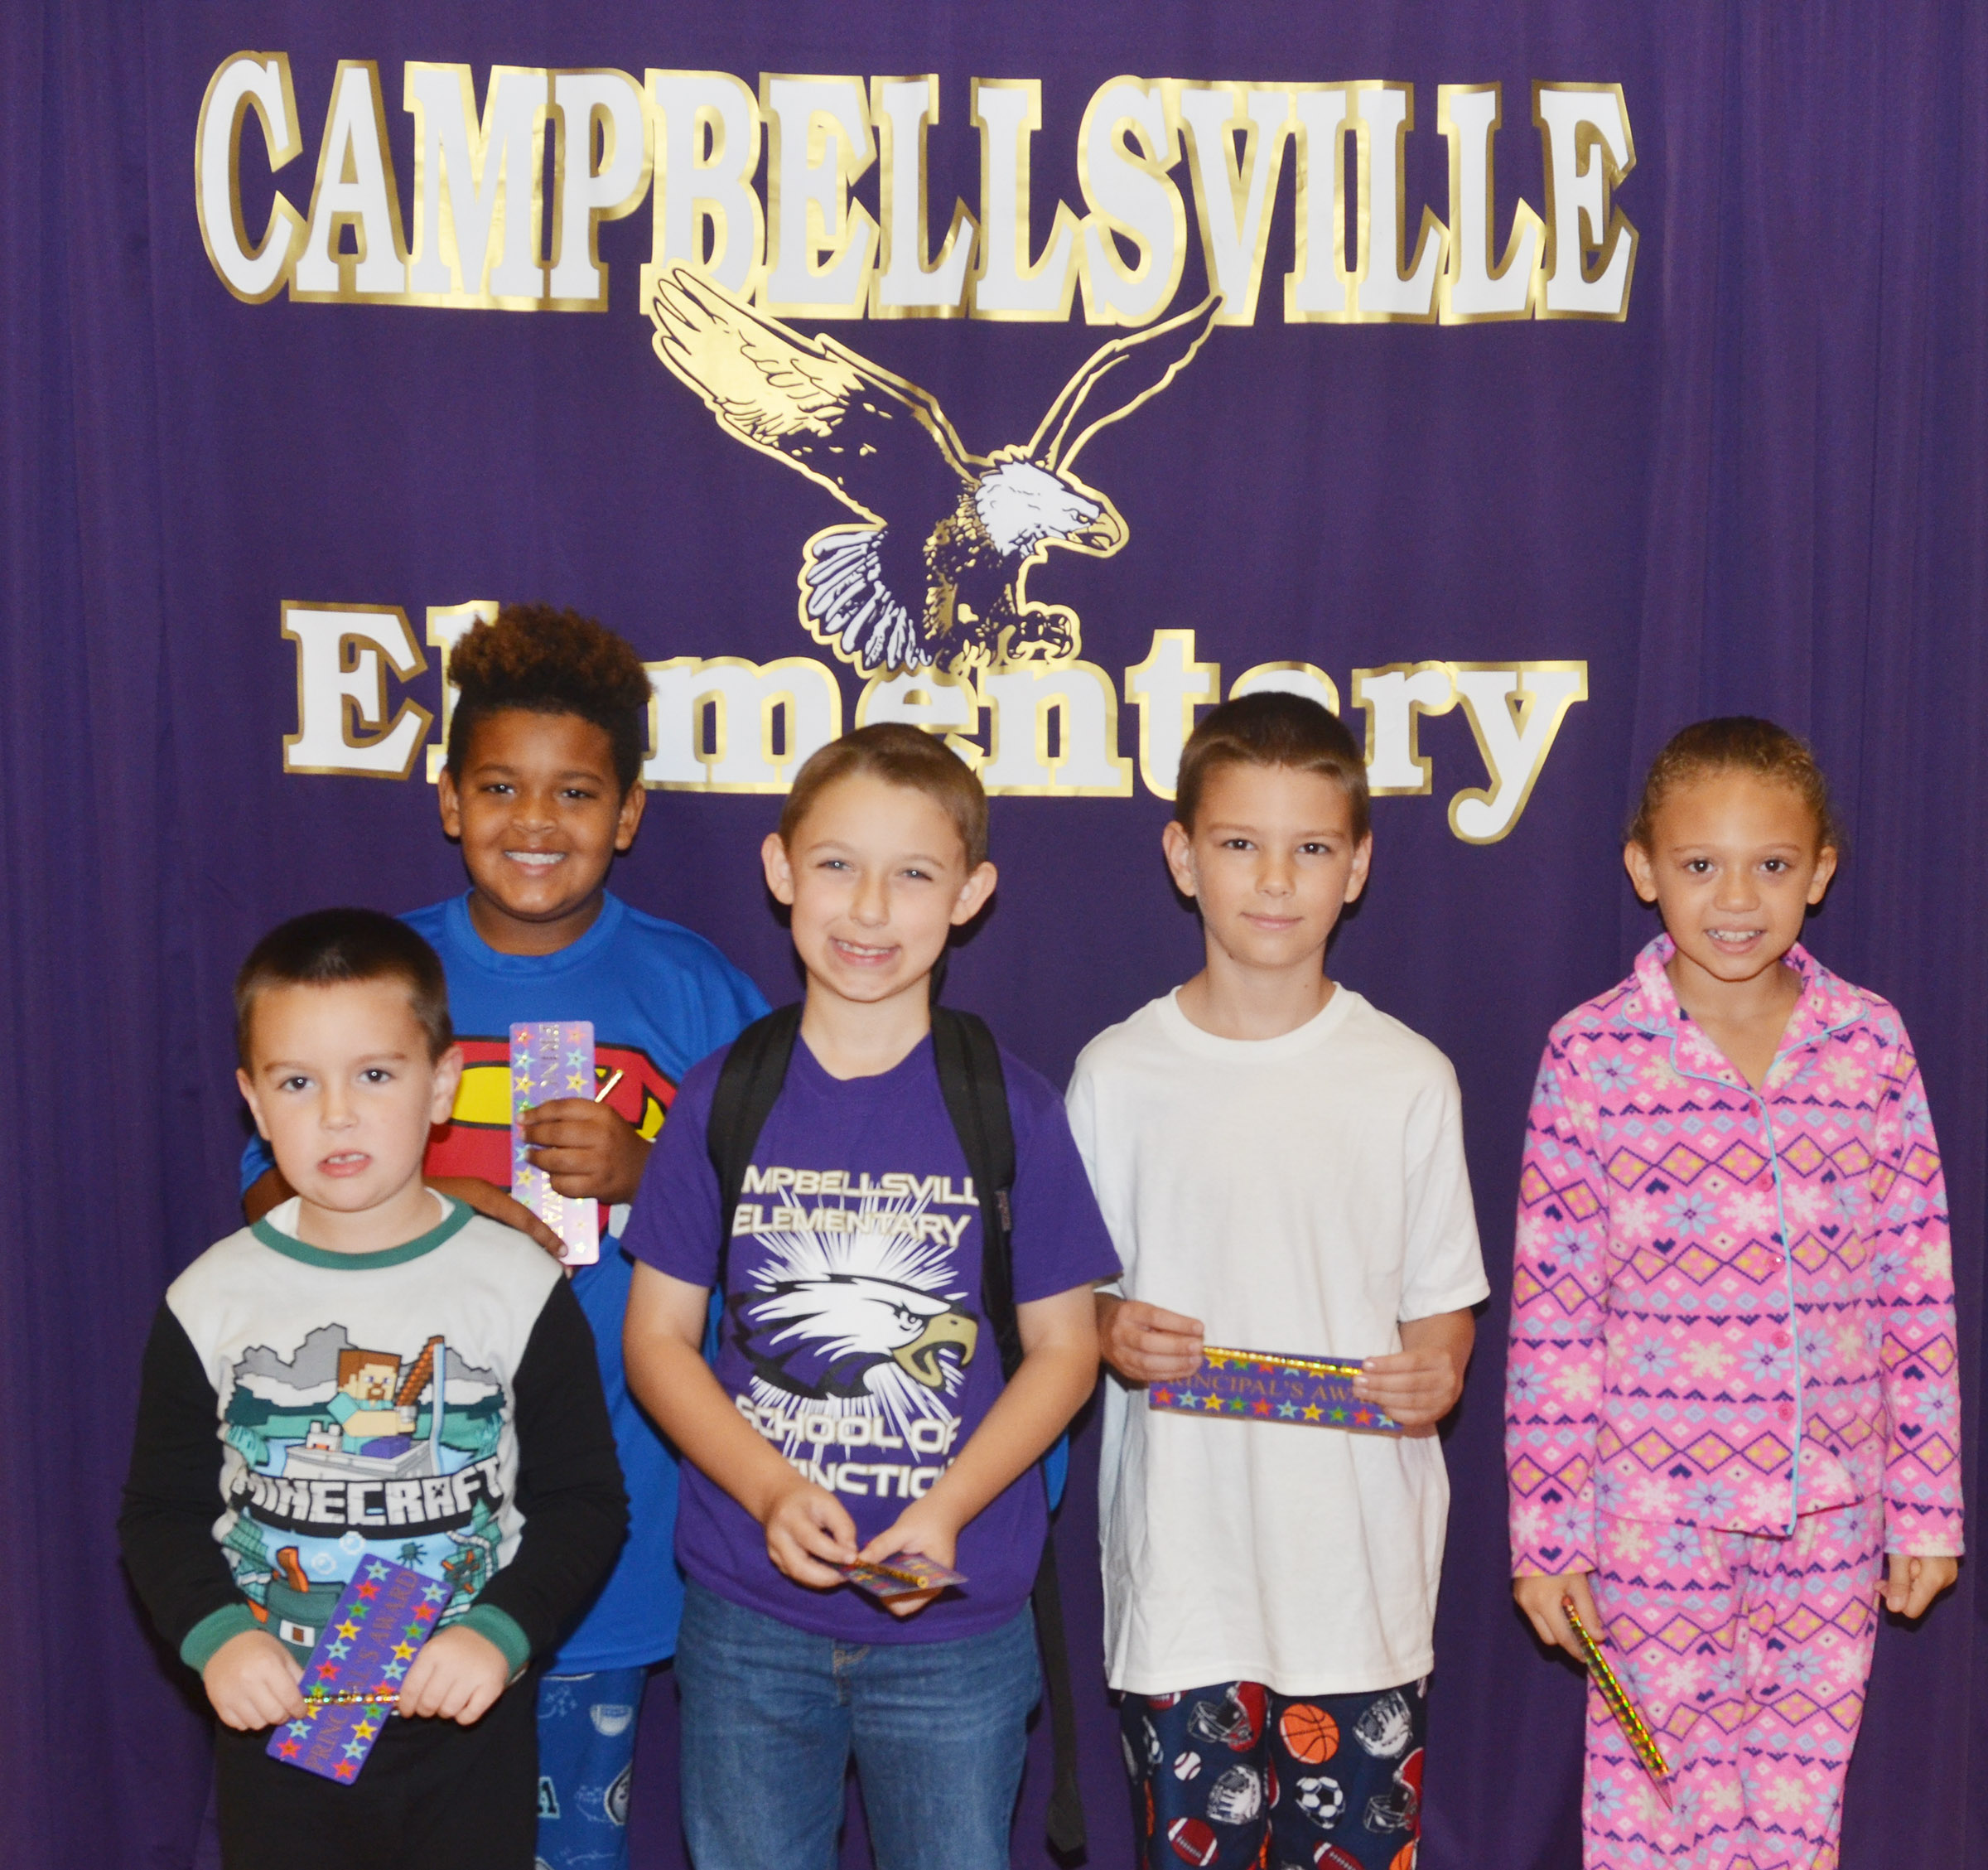 From left are kindergartener Xander Britton, third-grader Jayden Moore, second-grader Aiden Forrest, fifth-grader Taylan Hunt and fourth-grader Alicia Spaulding. Absent from the photo is first-grader Kira Dotson.